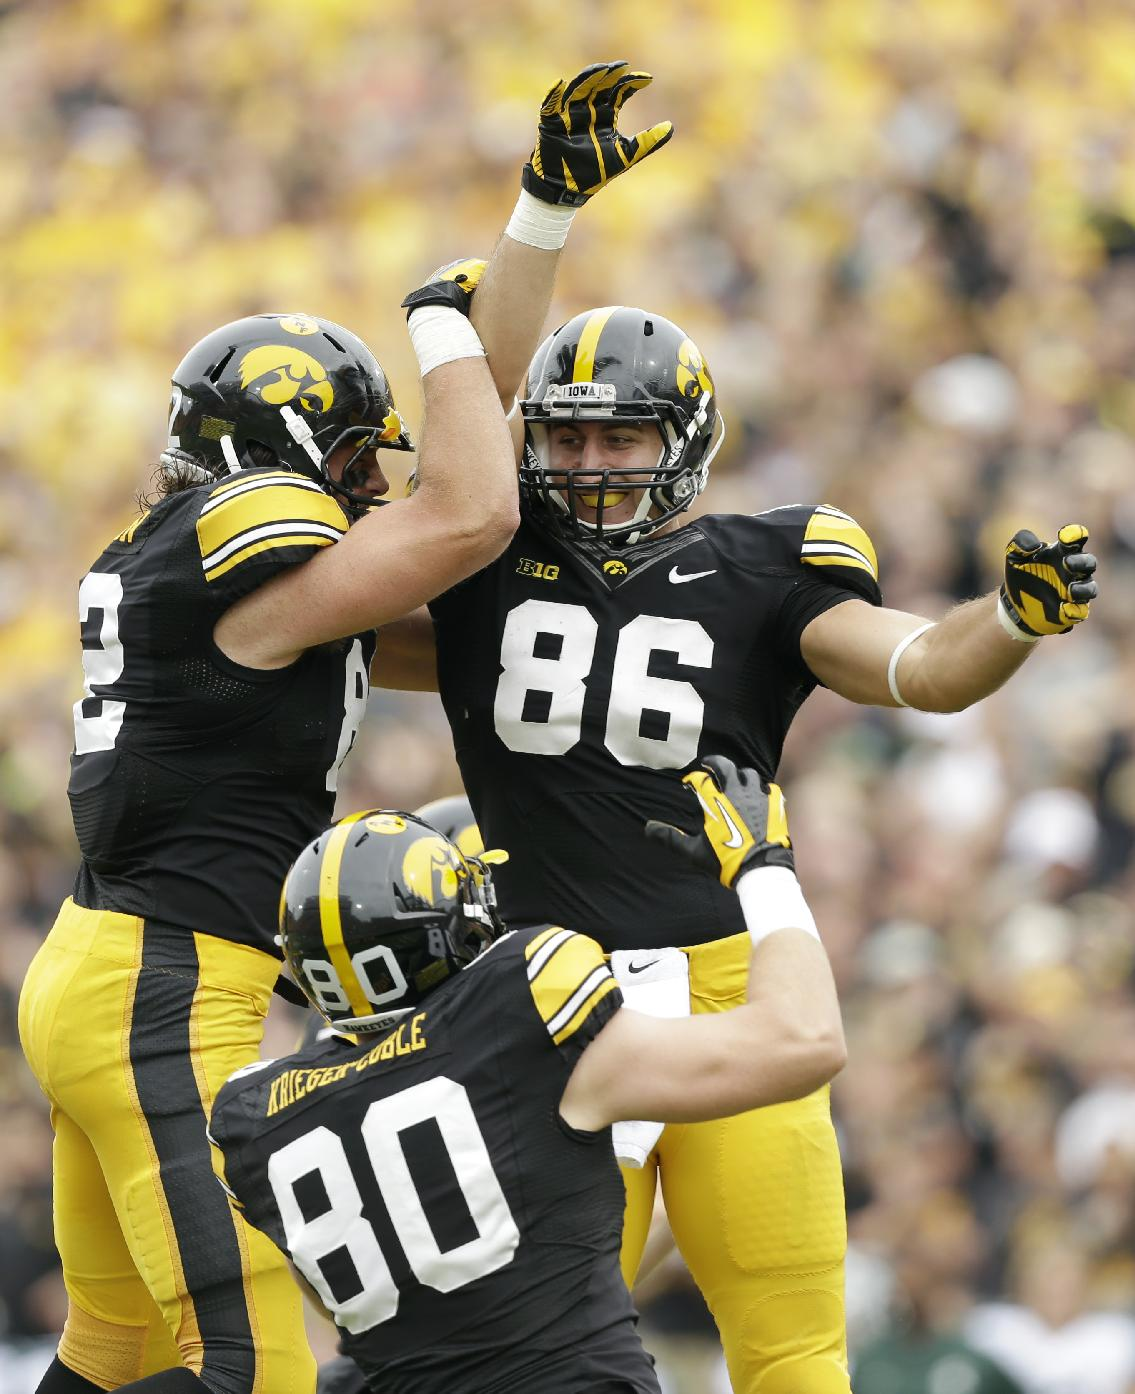 Iowa tight end C.J. Fiedorowicz (86) celebrates with teammates Ray Hamilton, left, and Henry Krieger Coble (80) after catching a 10-yard touchdown pass during the first half of an NCAA college football game against Michigan State, Saturday, Oct. 5, 2013, in Iowa City, Iowa